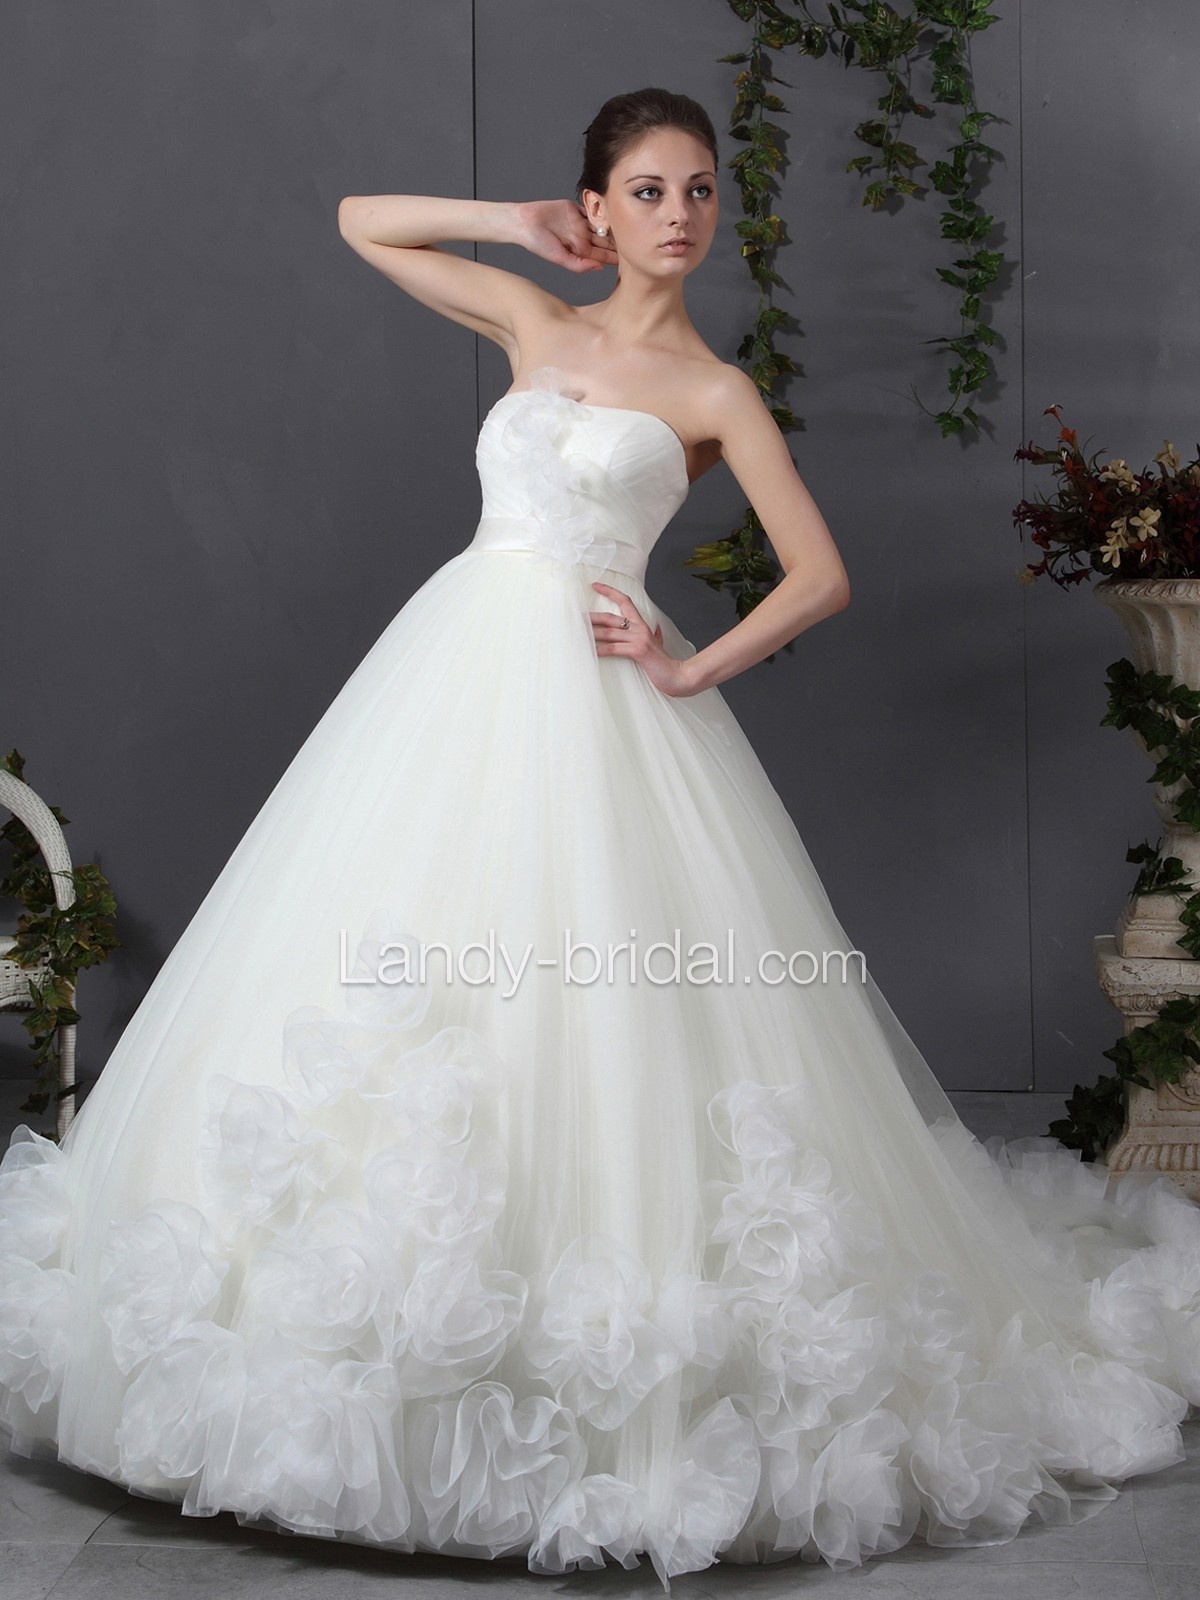 Welcome new post has been published on for Wedding dresses for young girls